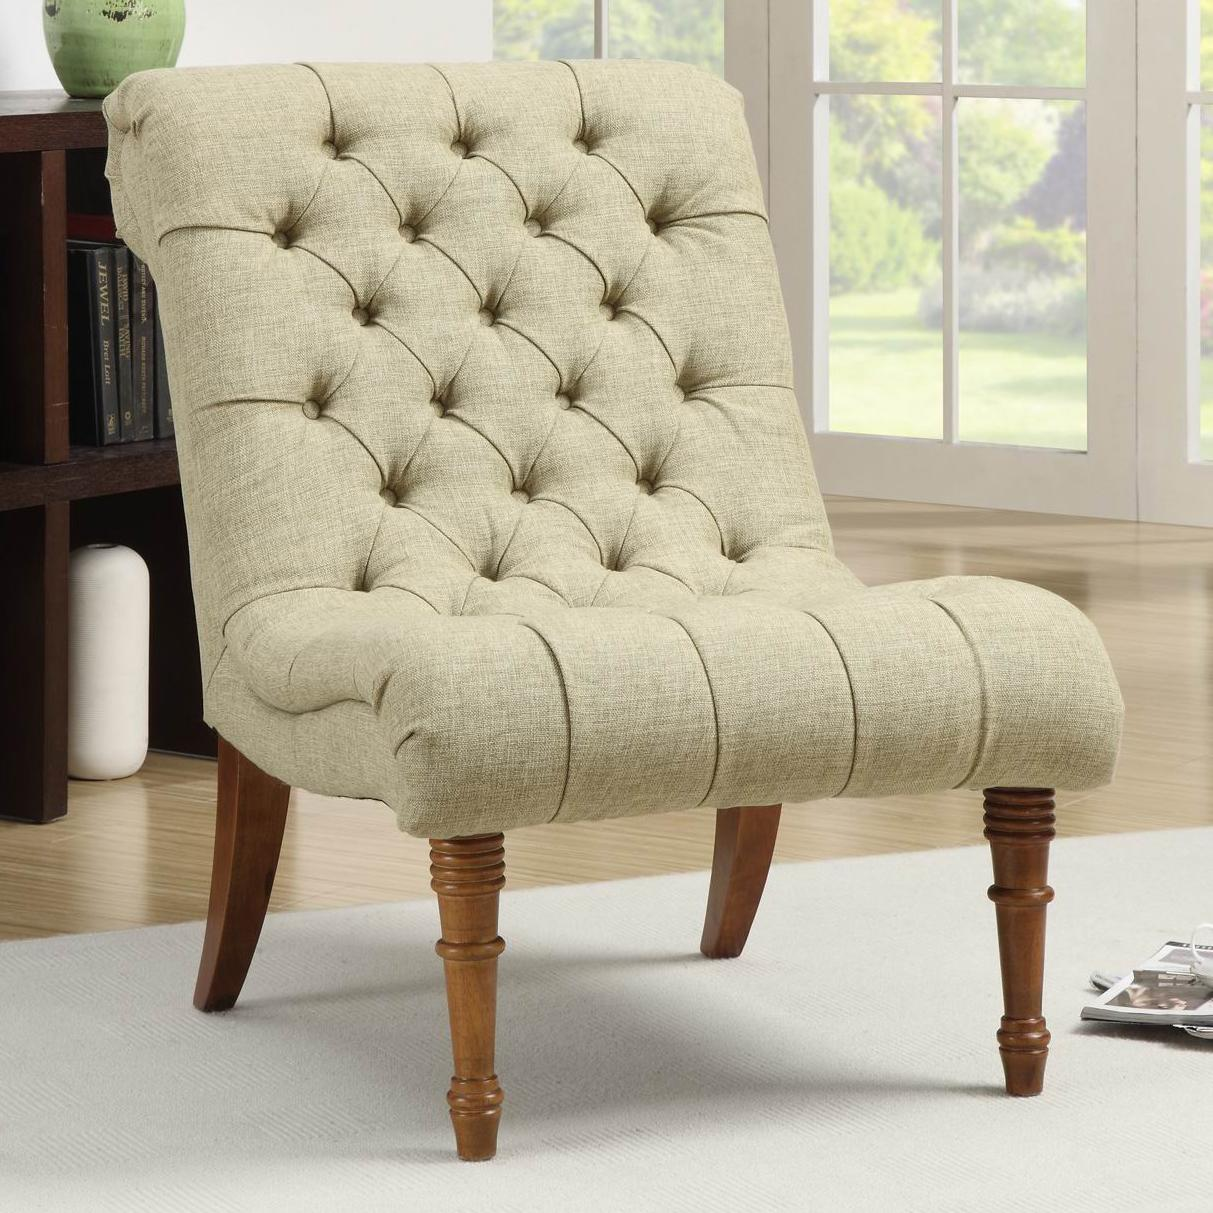 Accent Chair Living Room Accent Seating Tufted Accent Chair Without Arms By Coaster At Value City Furniture